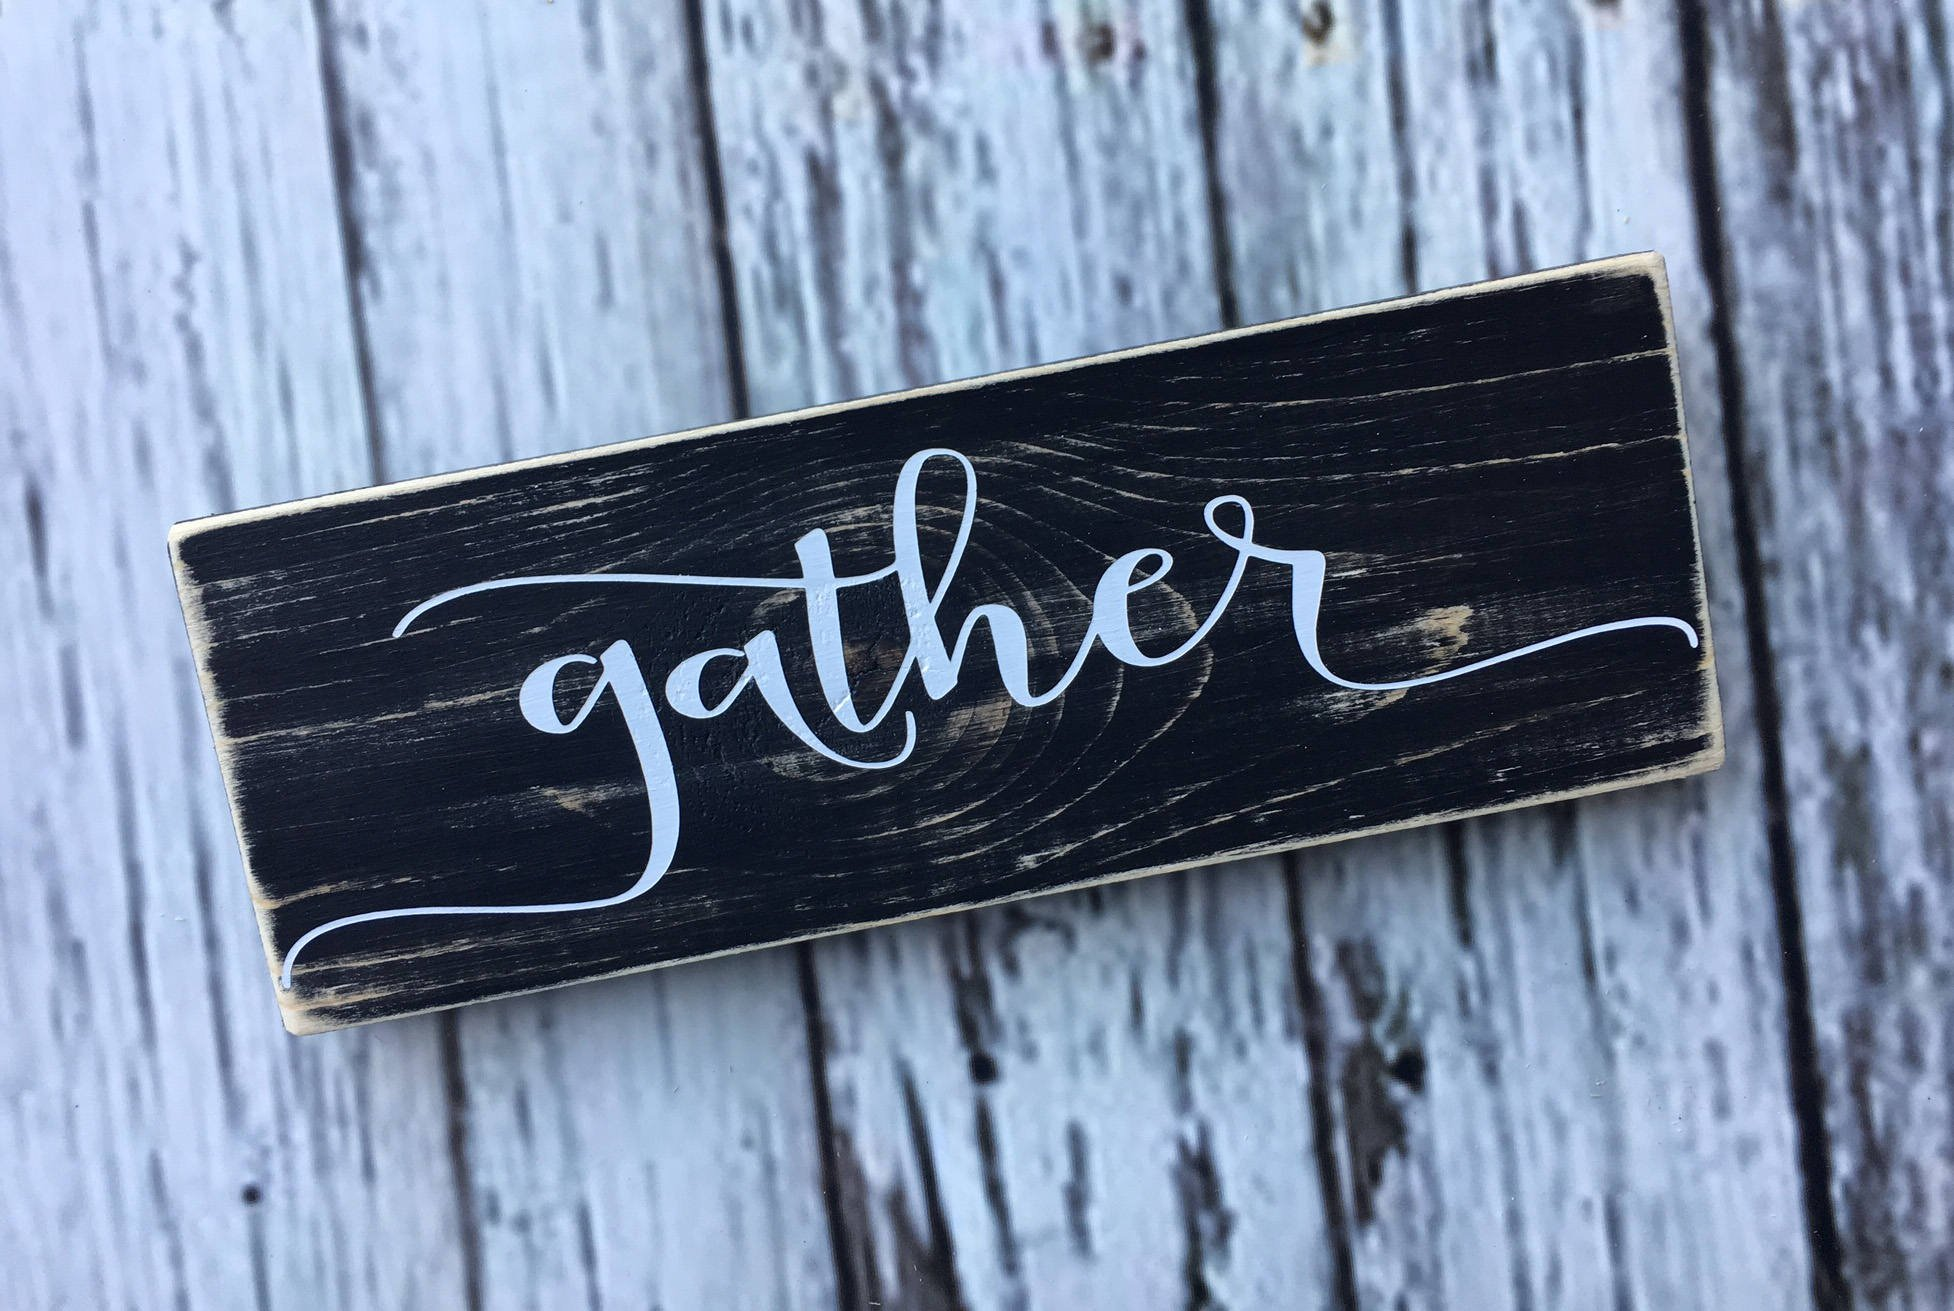 WoodenSign gather small wood sign shelf sitter everyday fall decor harvest thanksgiving fall rustic farmhouse decor 3'' tall x 10'' wide